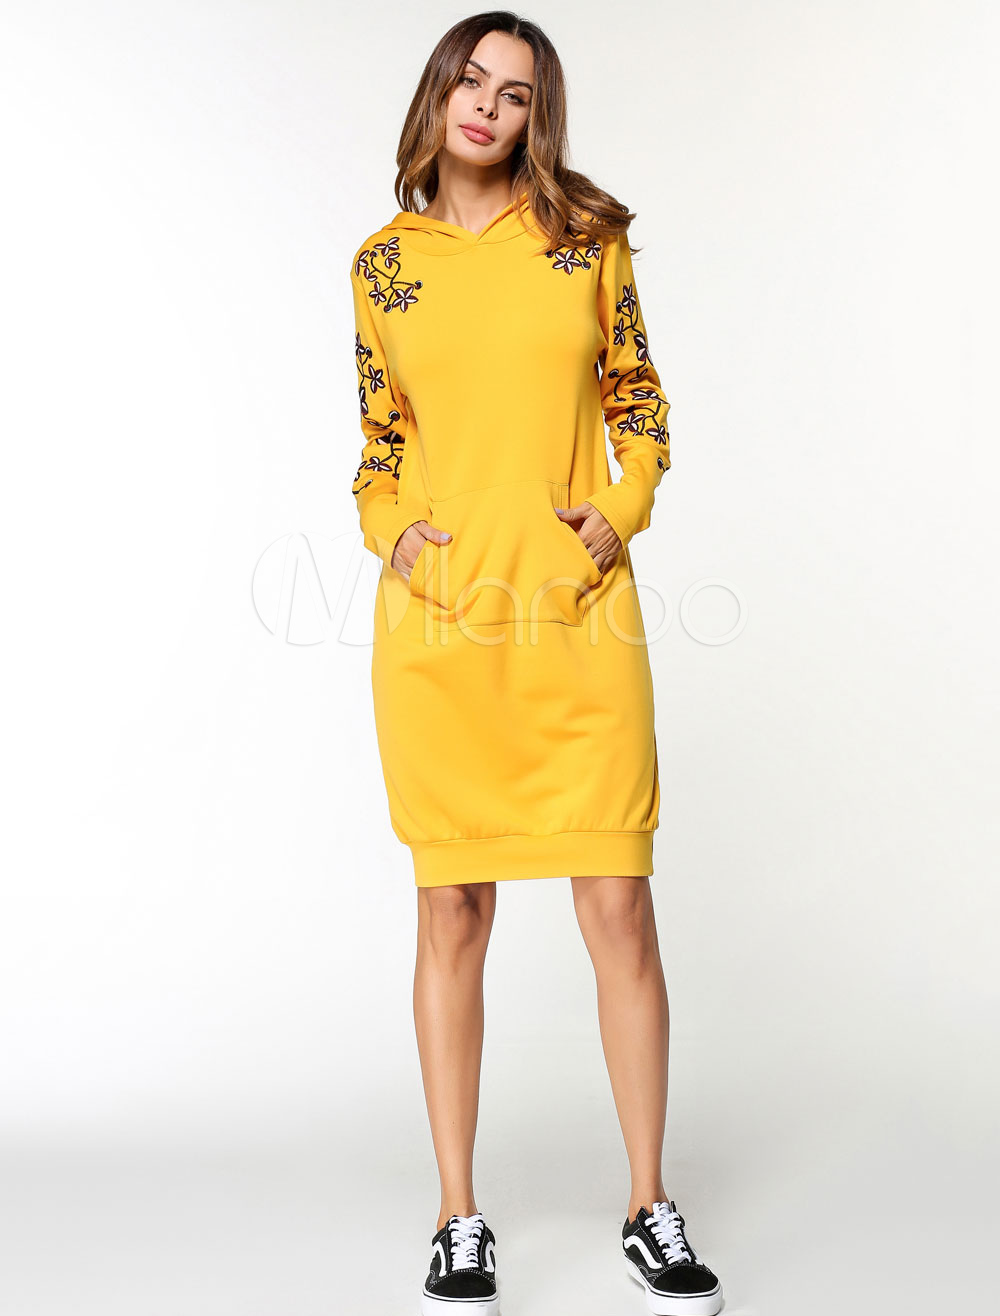 Buy Women Shift Dress Hooded Embroidered Long Sleeve Yellow Hoodie Dress for $26.99 in Milanoo store